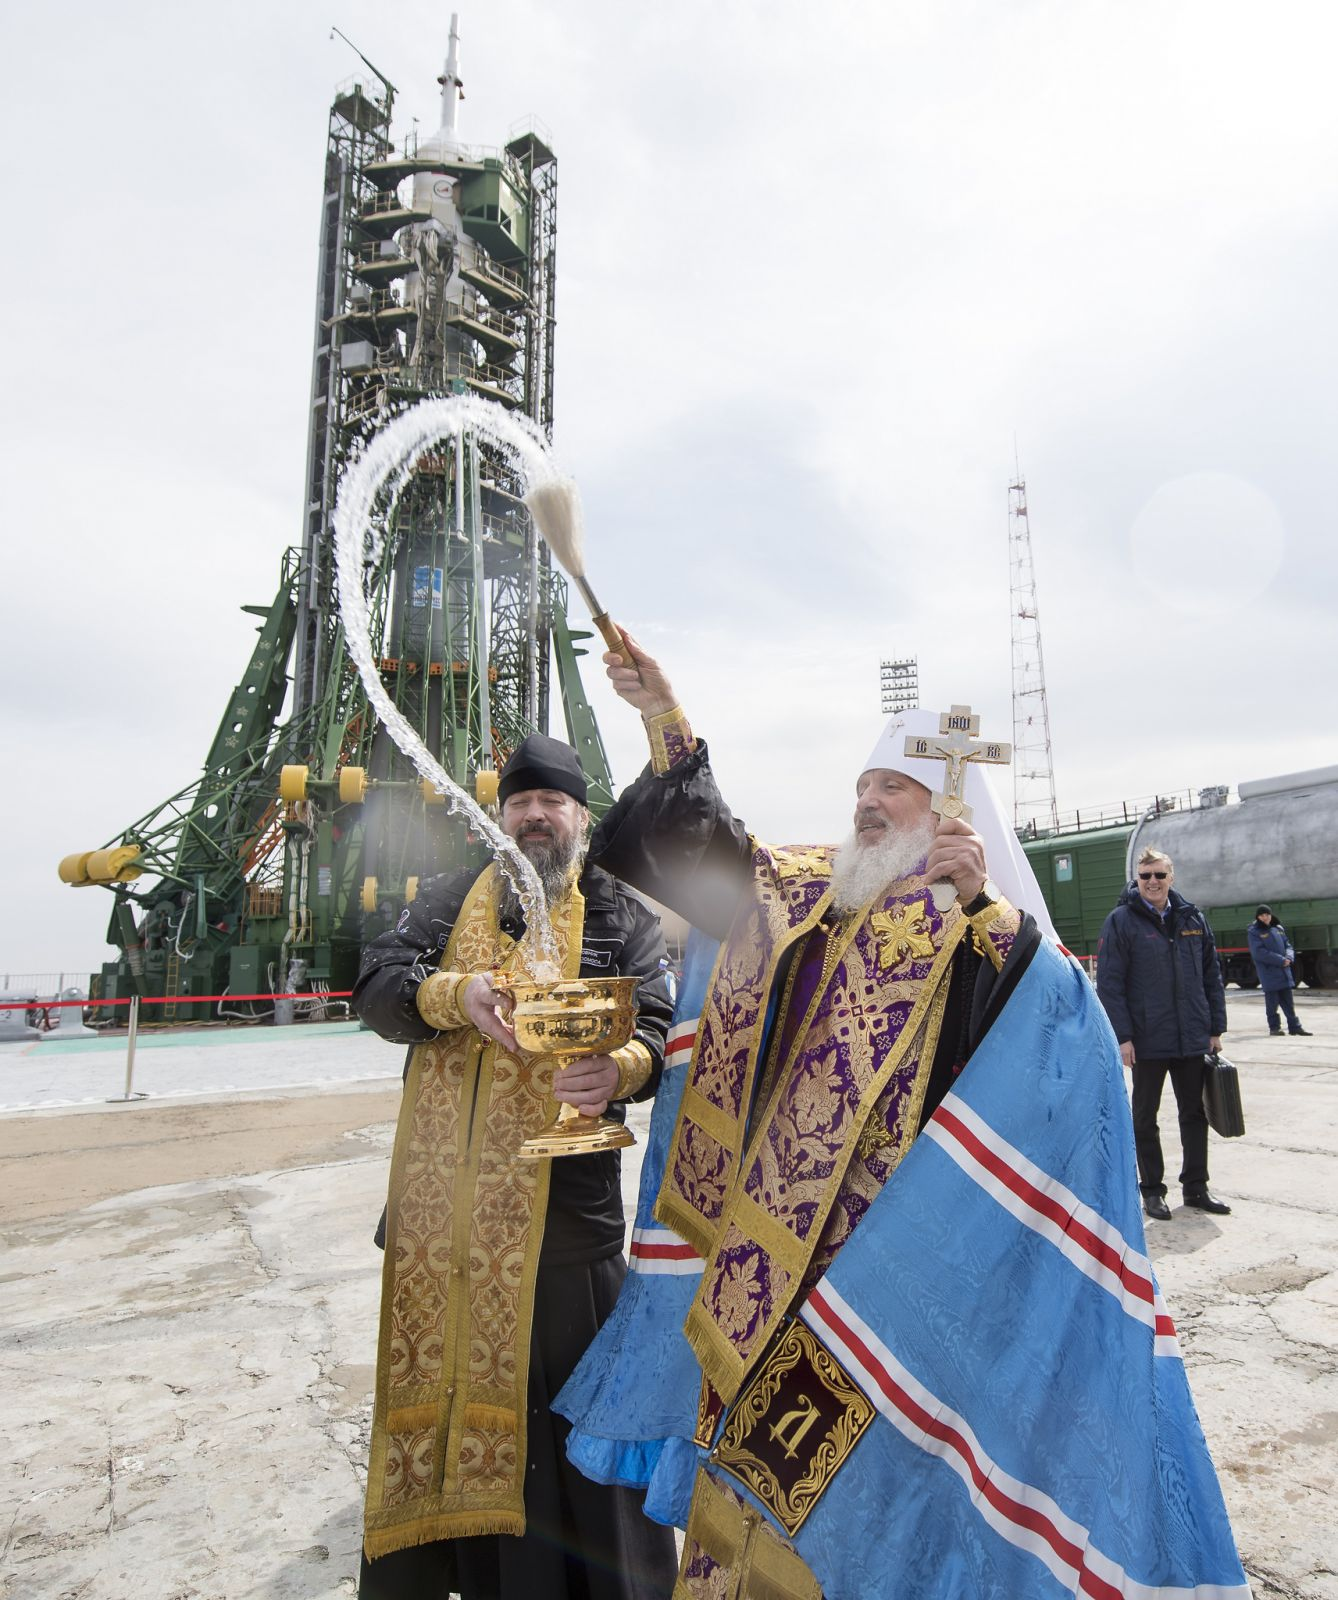 A Russian Orthodox Priest blesses the media at the launch pad. Photo Credit: Joel Kowsky / NASA